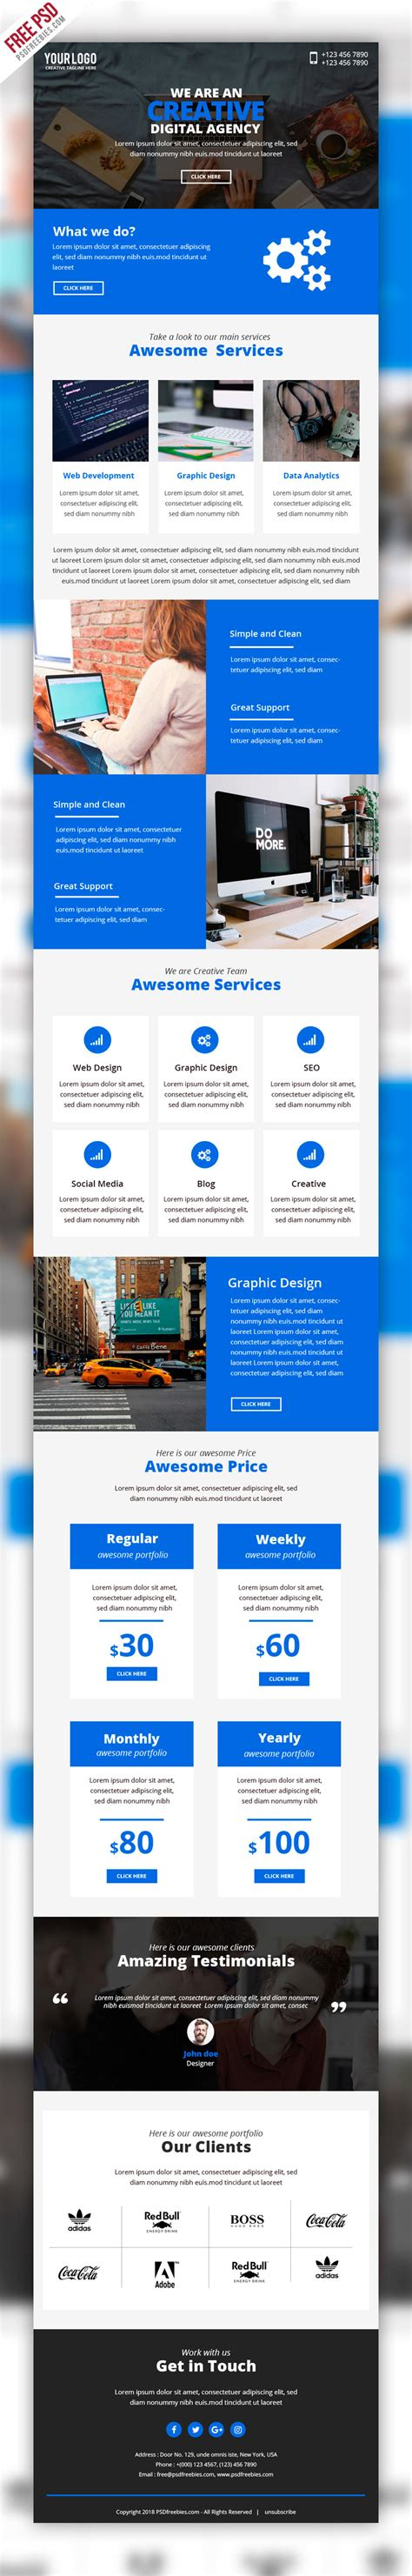 free psd business marketing emailer template psd on behance